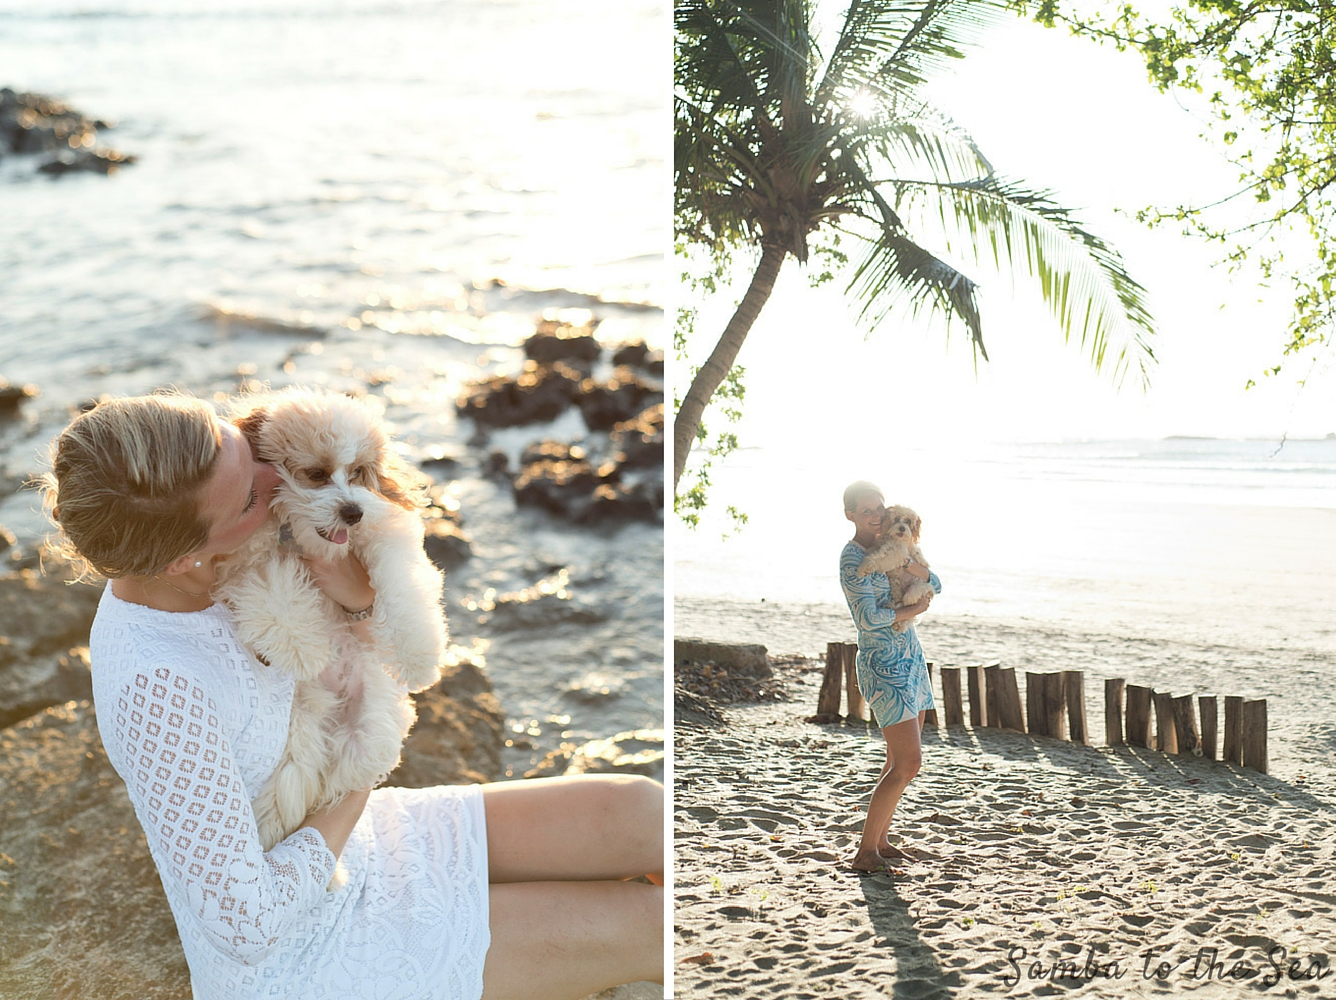 Waffles the Cavapoo and Theresa in Tamarindo Beach, Costa Rica. Theresa is wearing the Lilly Pulitzer Mara Scallop Hem Lace Dress and the Marlina Printed T-Shirt Dress. Photographed by Kristen M. Brown, Samba to the Sea Photography. Photographed by Kristen M. Brown, Samba to the Sea Photography.